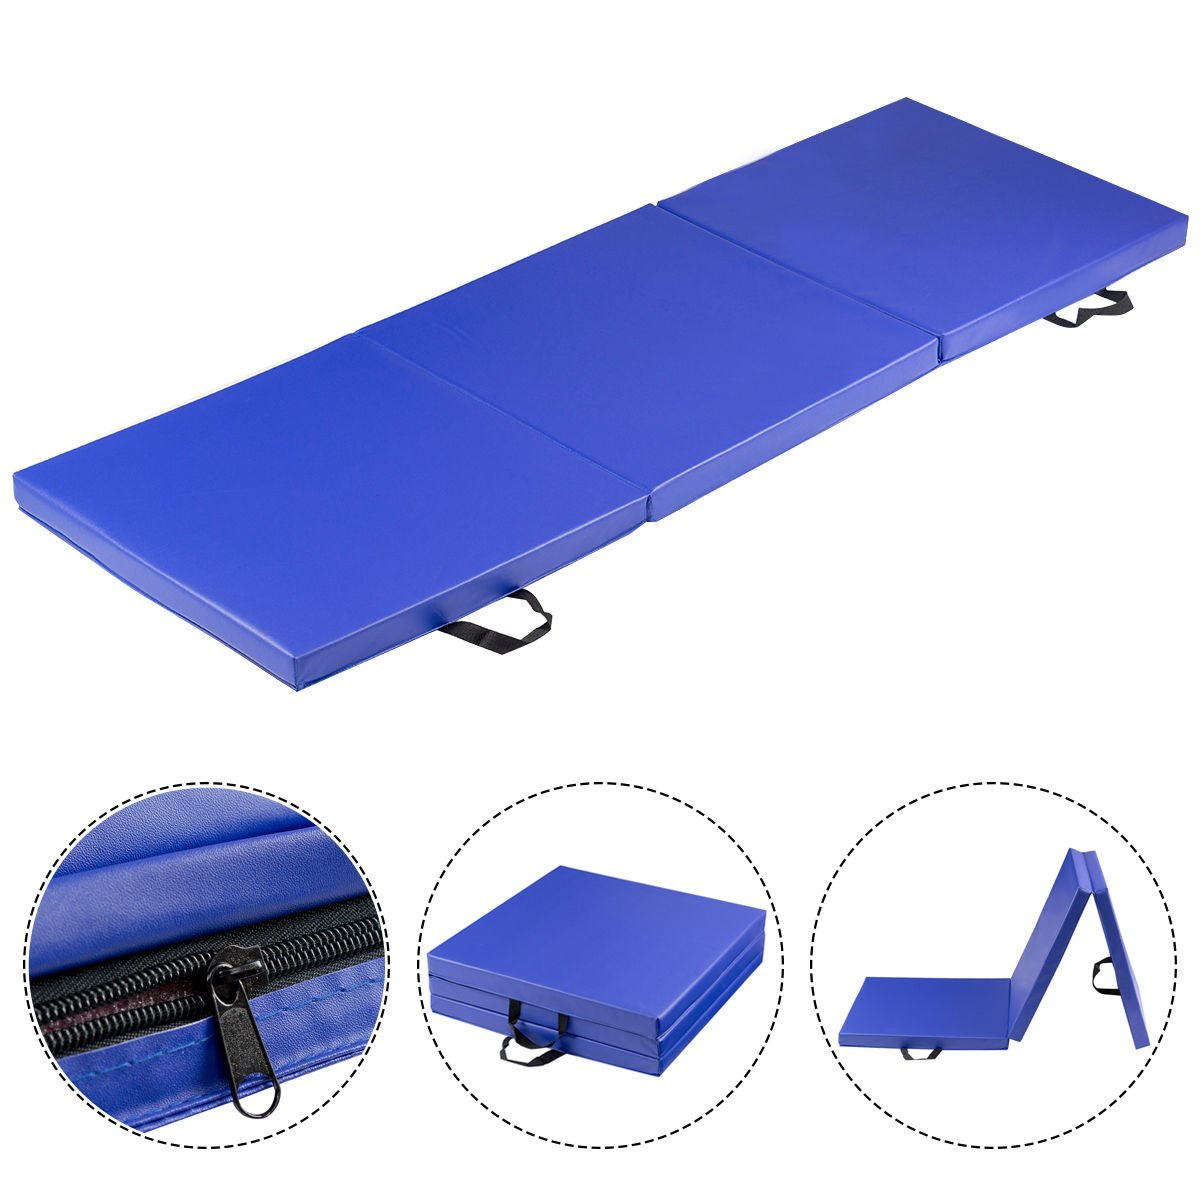 COSTWAY Blue Tri-Fold Gymnastics Mat 6'X2' Folding Fitness Exercise W/ Carrying Handles by COSTWAY